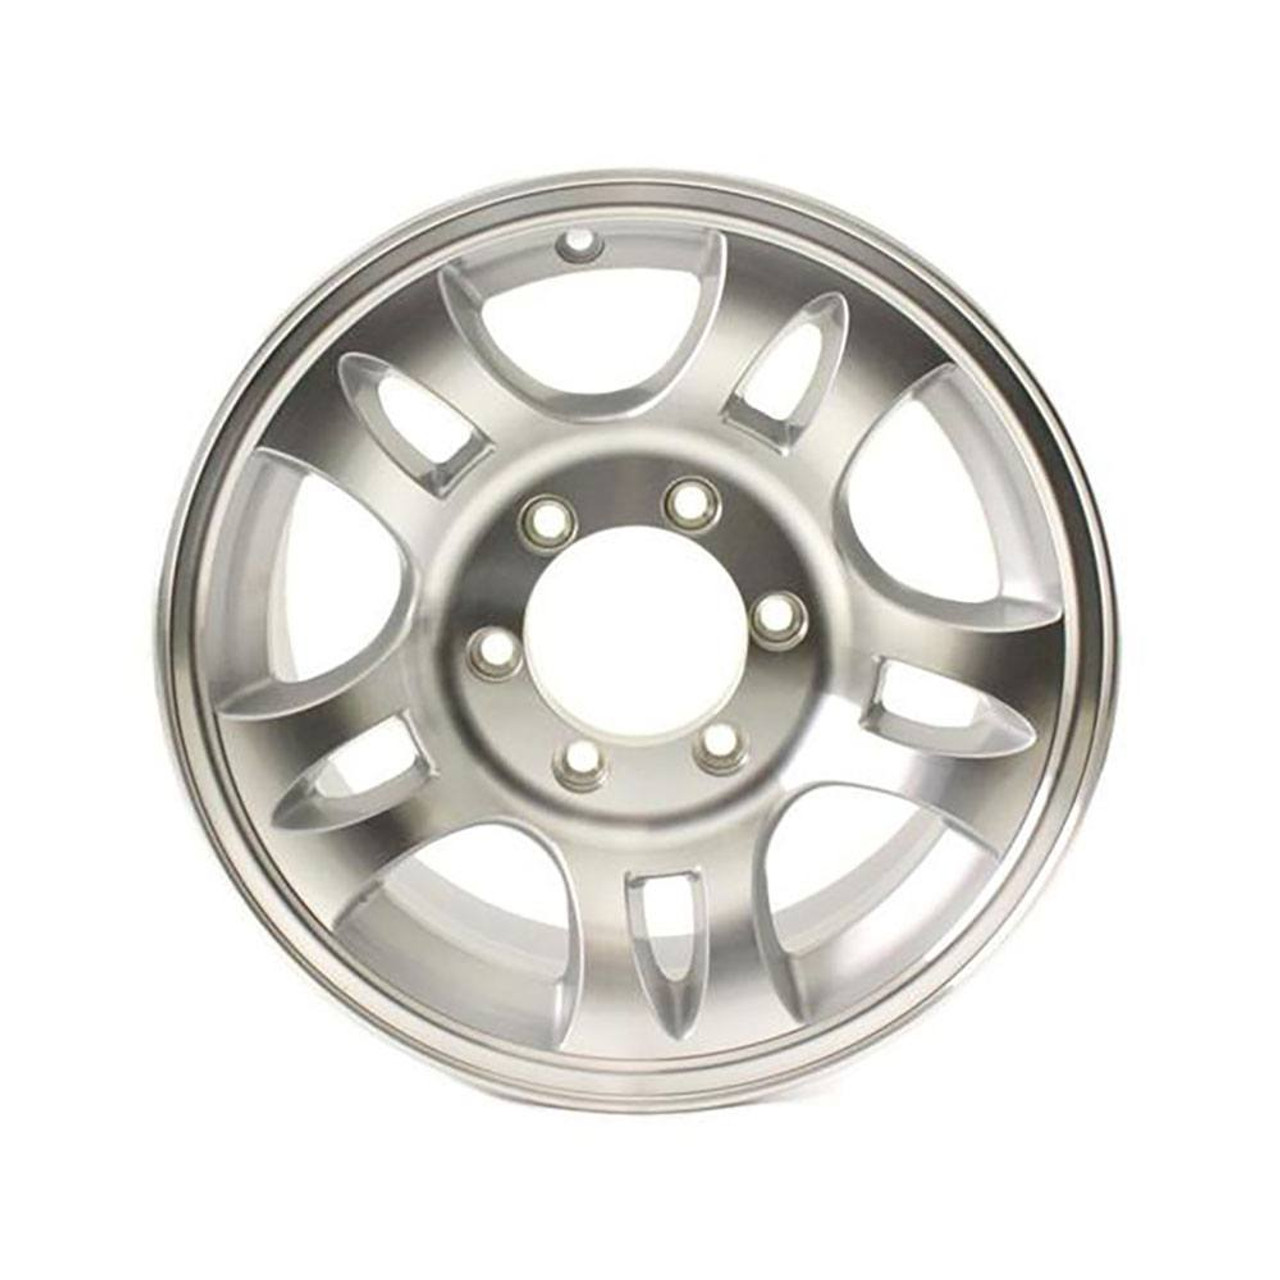 "16X6 6-Lug on 5.5"" Aluminum T03 Trailer Wheel - T03-66655T"